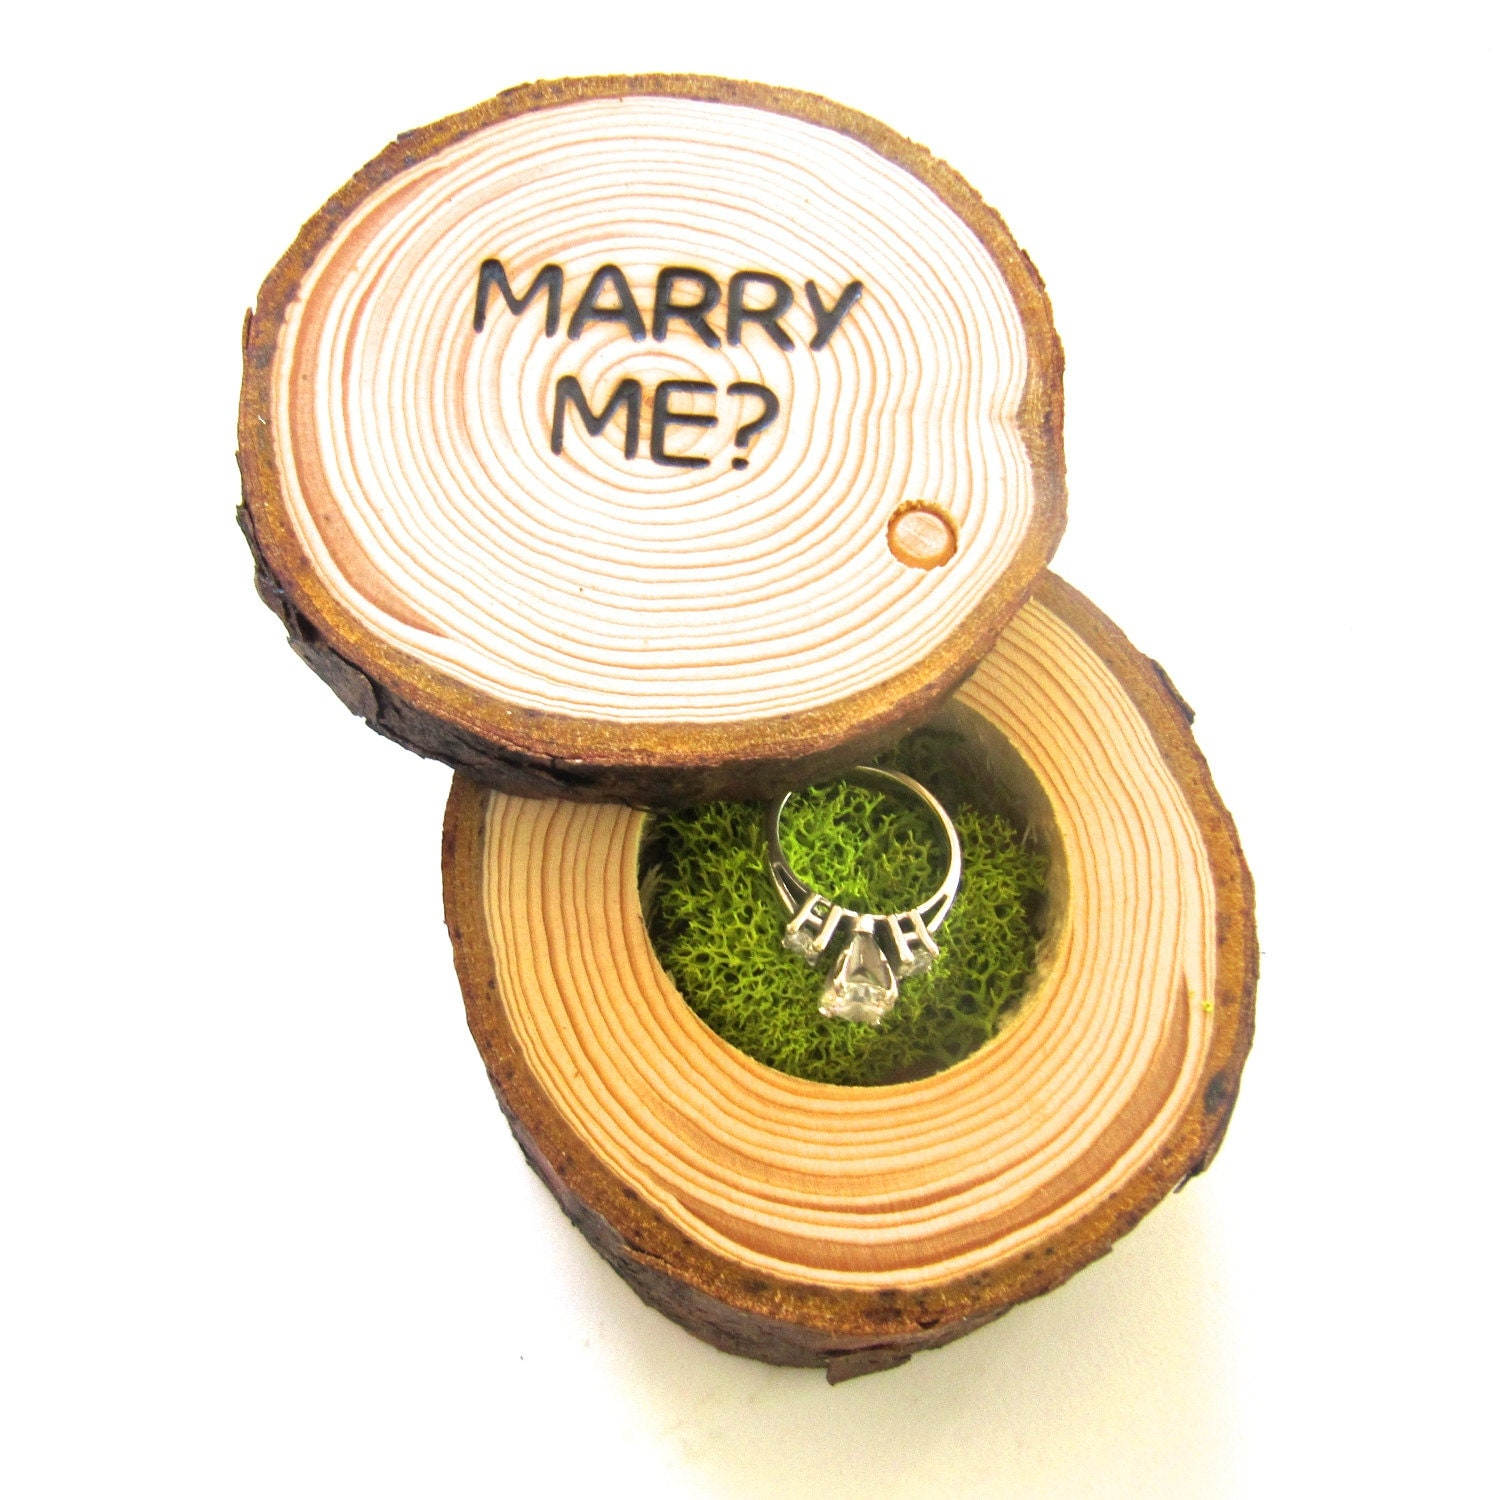 Proposal ring box wedding proposal box engagement ring box for Cute engagement ring boxes